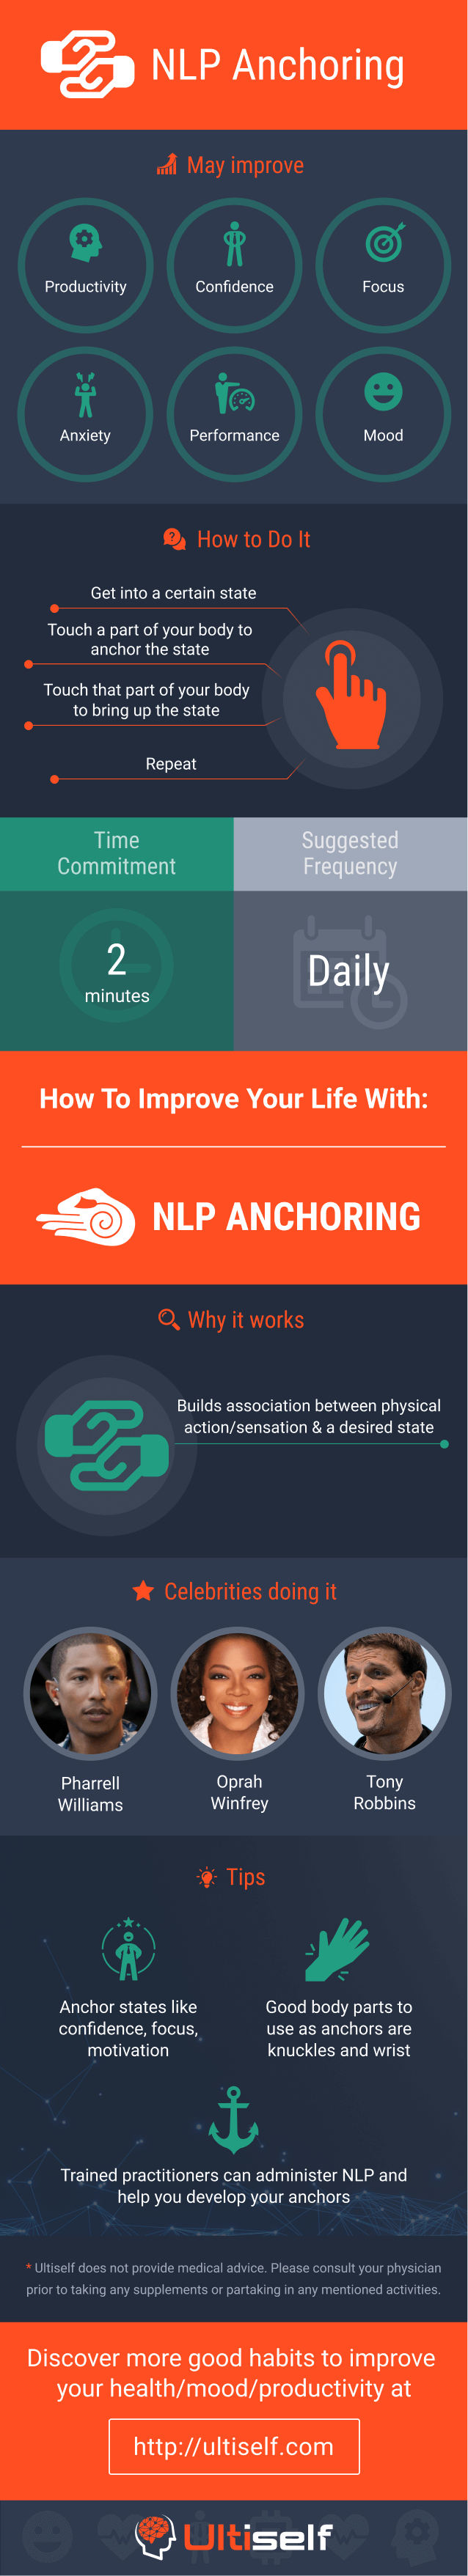 NLP Anchoring infographic